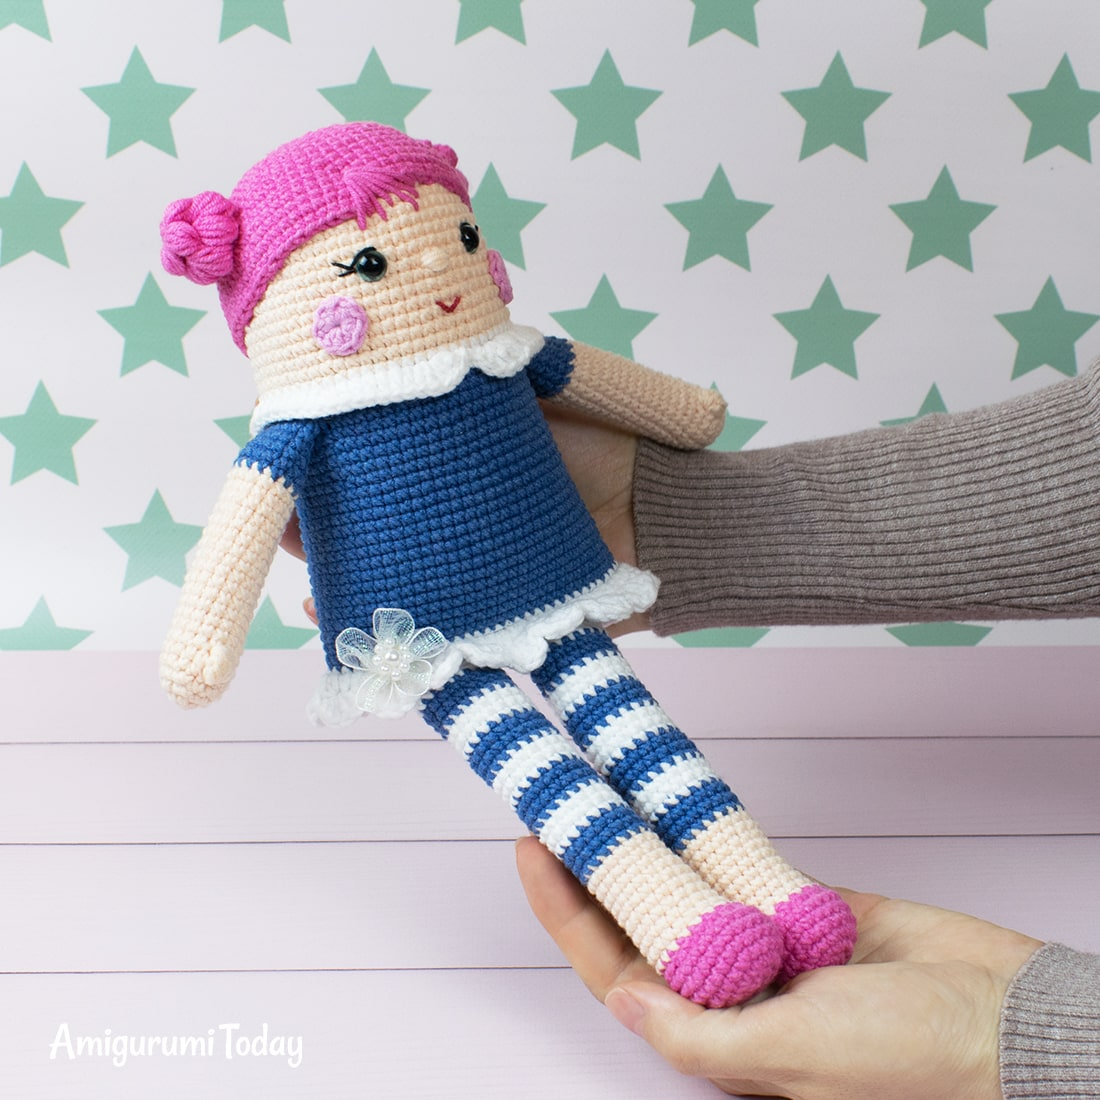 Free crocheted rag doll amigurumi pattern by Amigurumi Today